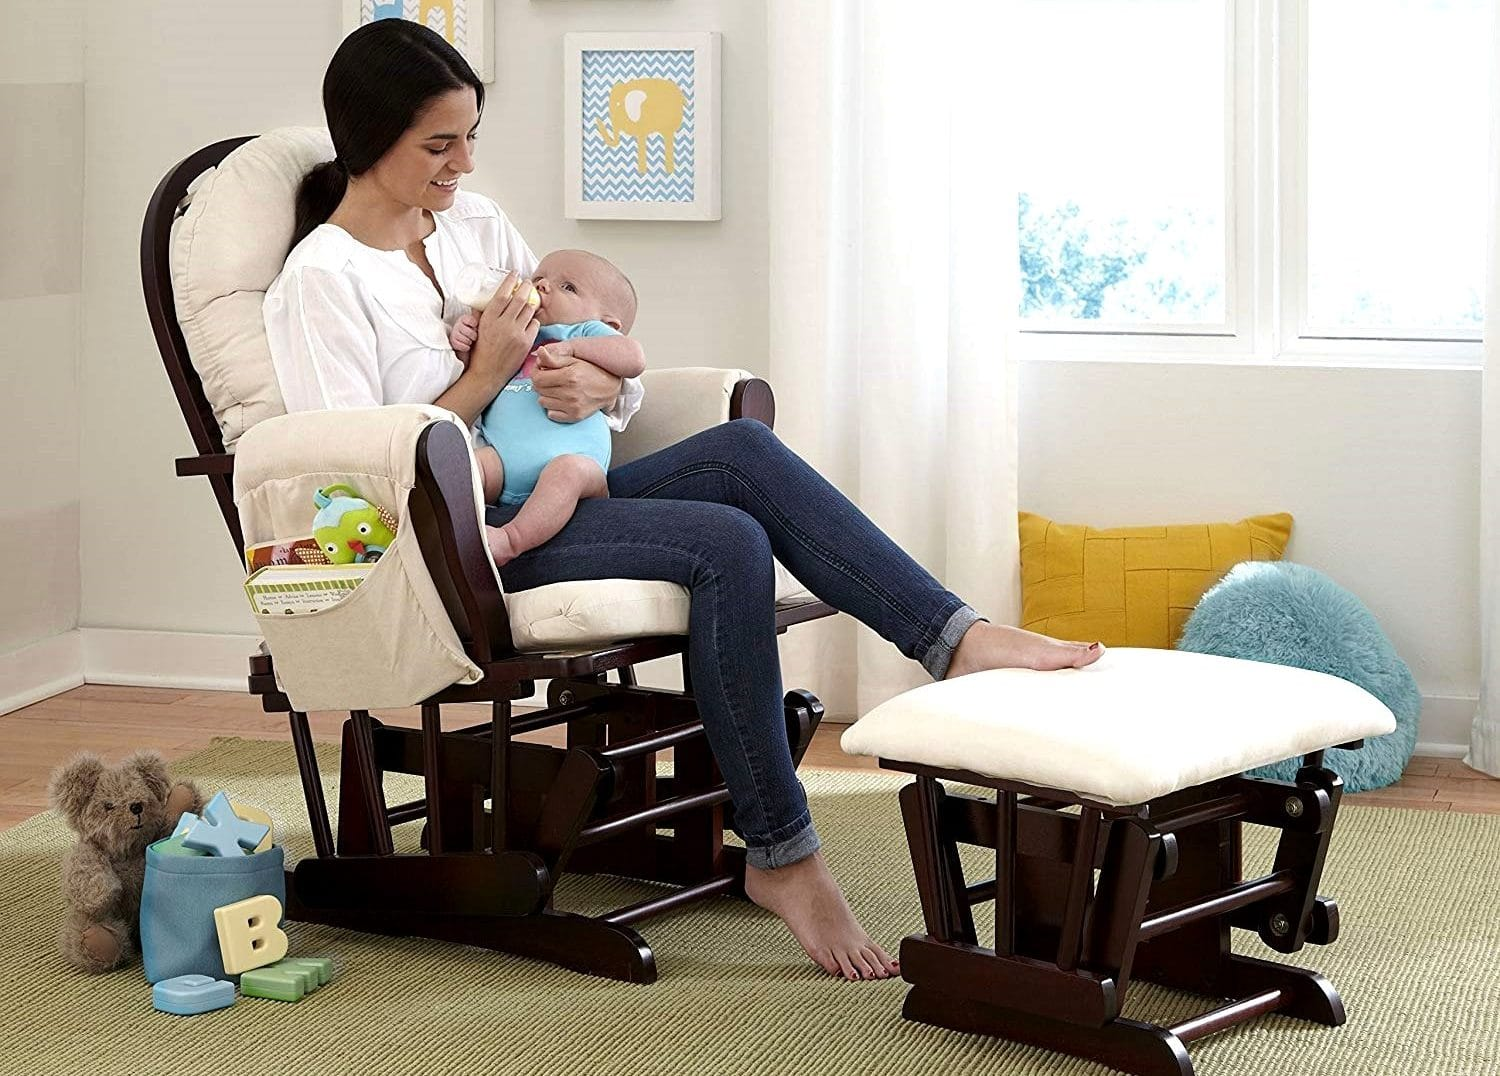 Super 7 Best Nursery Gliders Nov 2019 Reviews Buying Guide Pdpeps Interior Chair Design Pdpepsorg